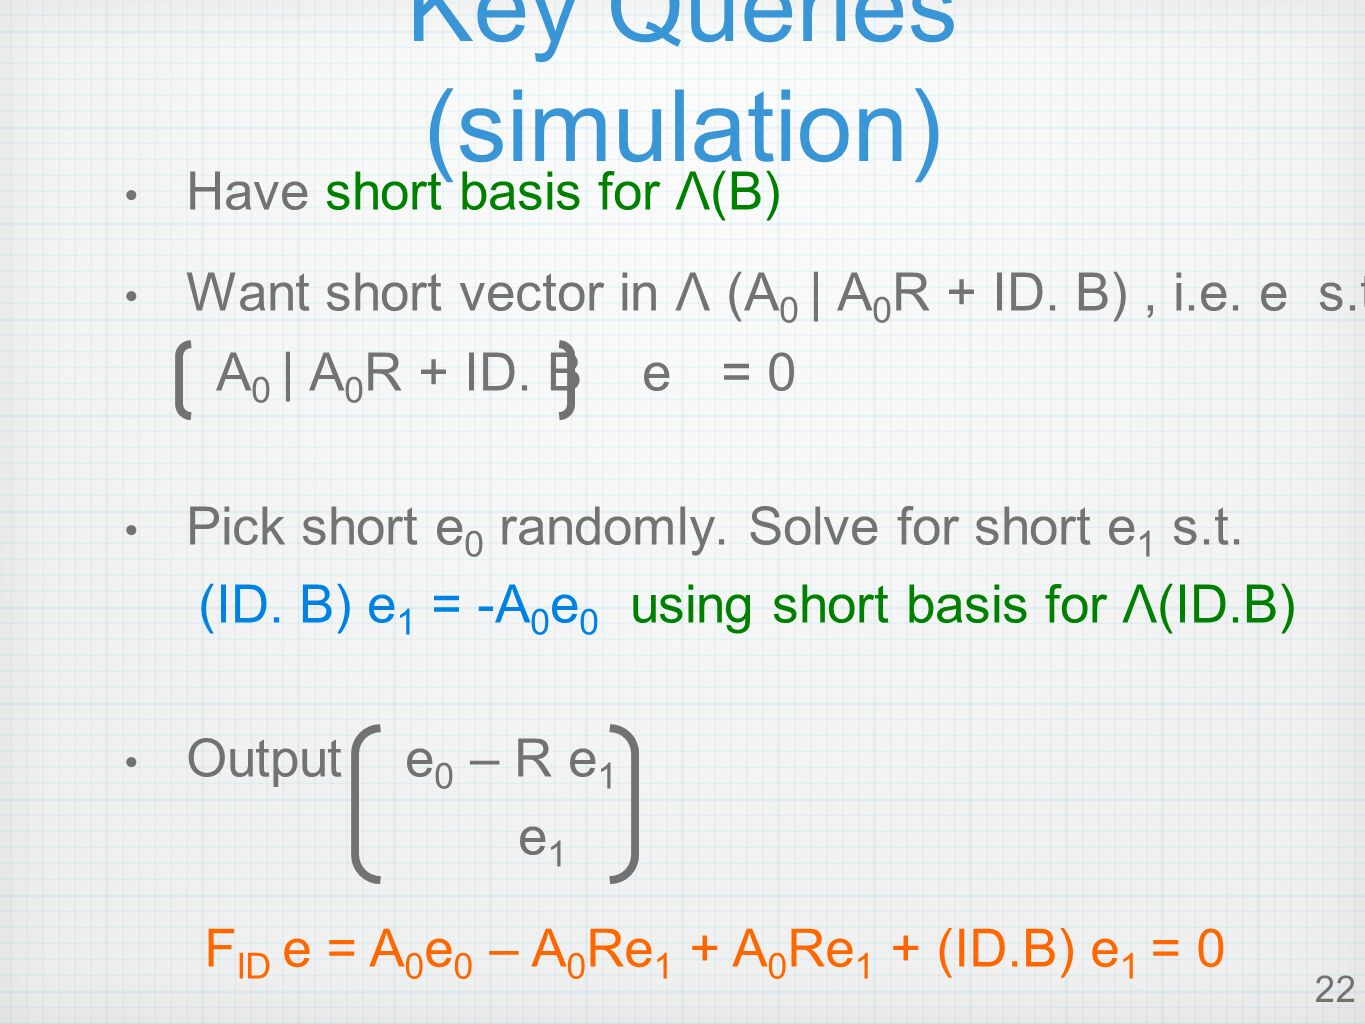 22 Key Queries (simulation) Have short basis for Λ(B) Want short vector in Λ (A 0 | A 0 R + ID.